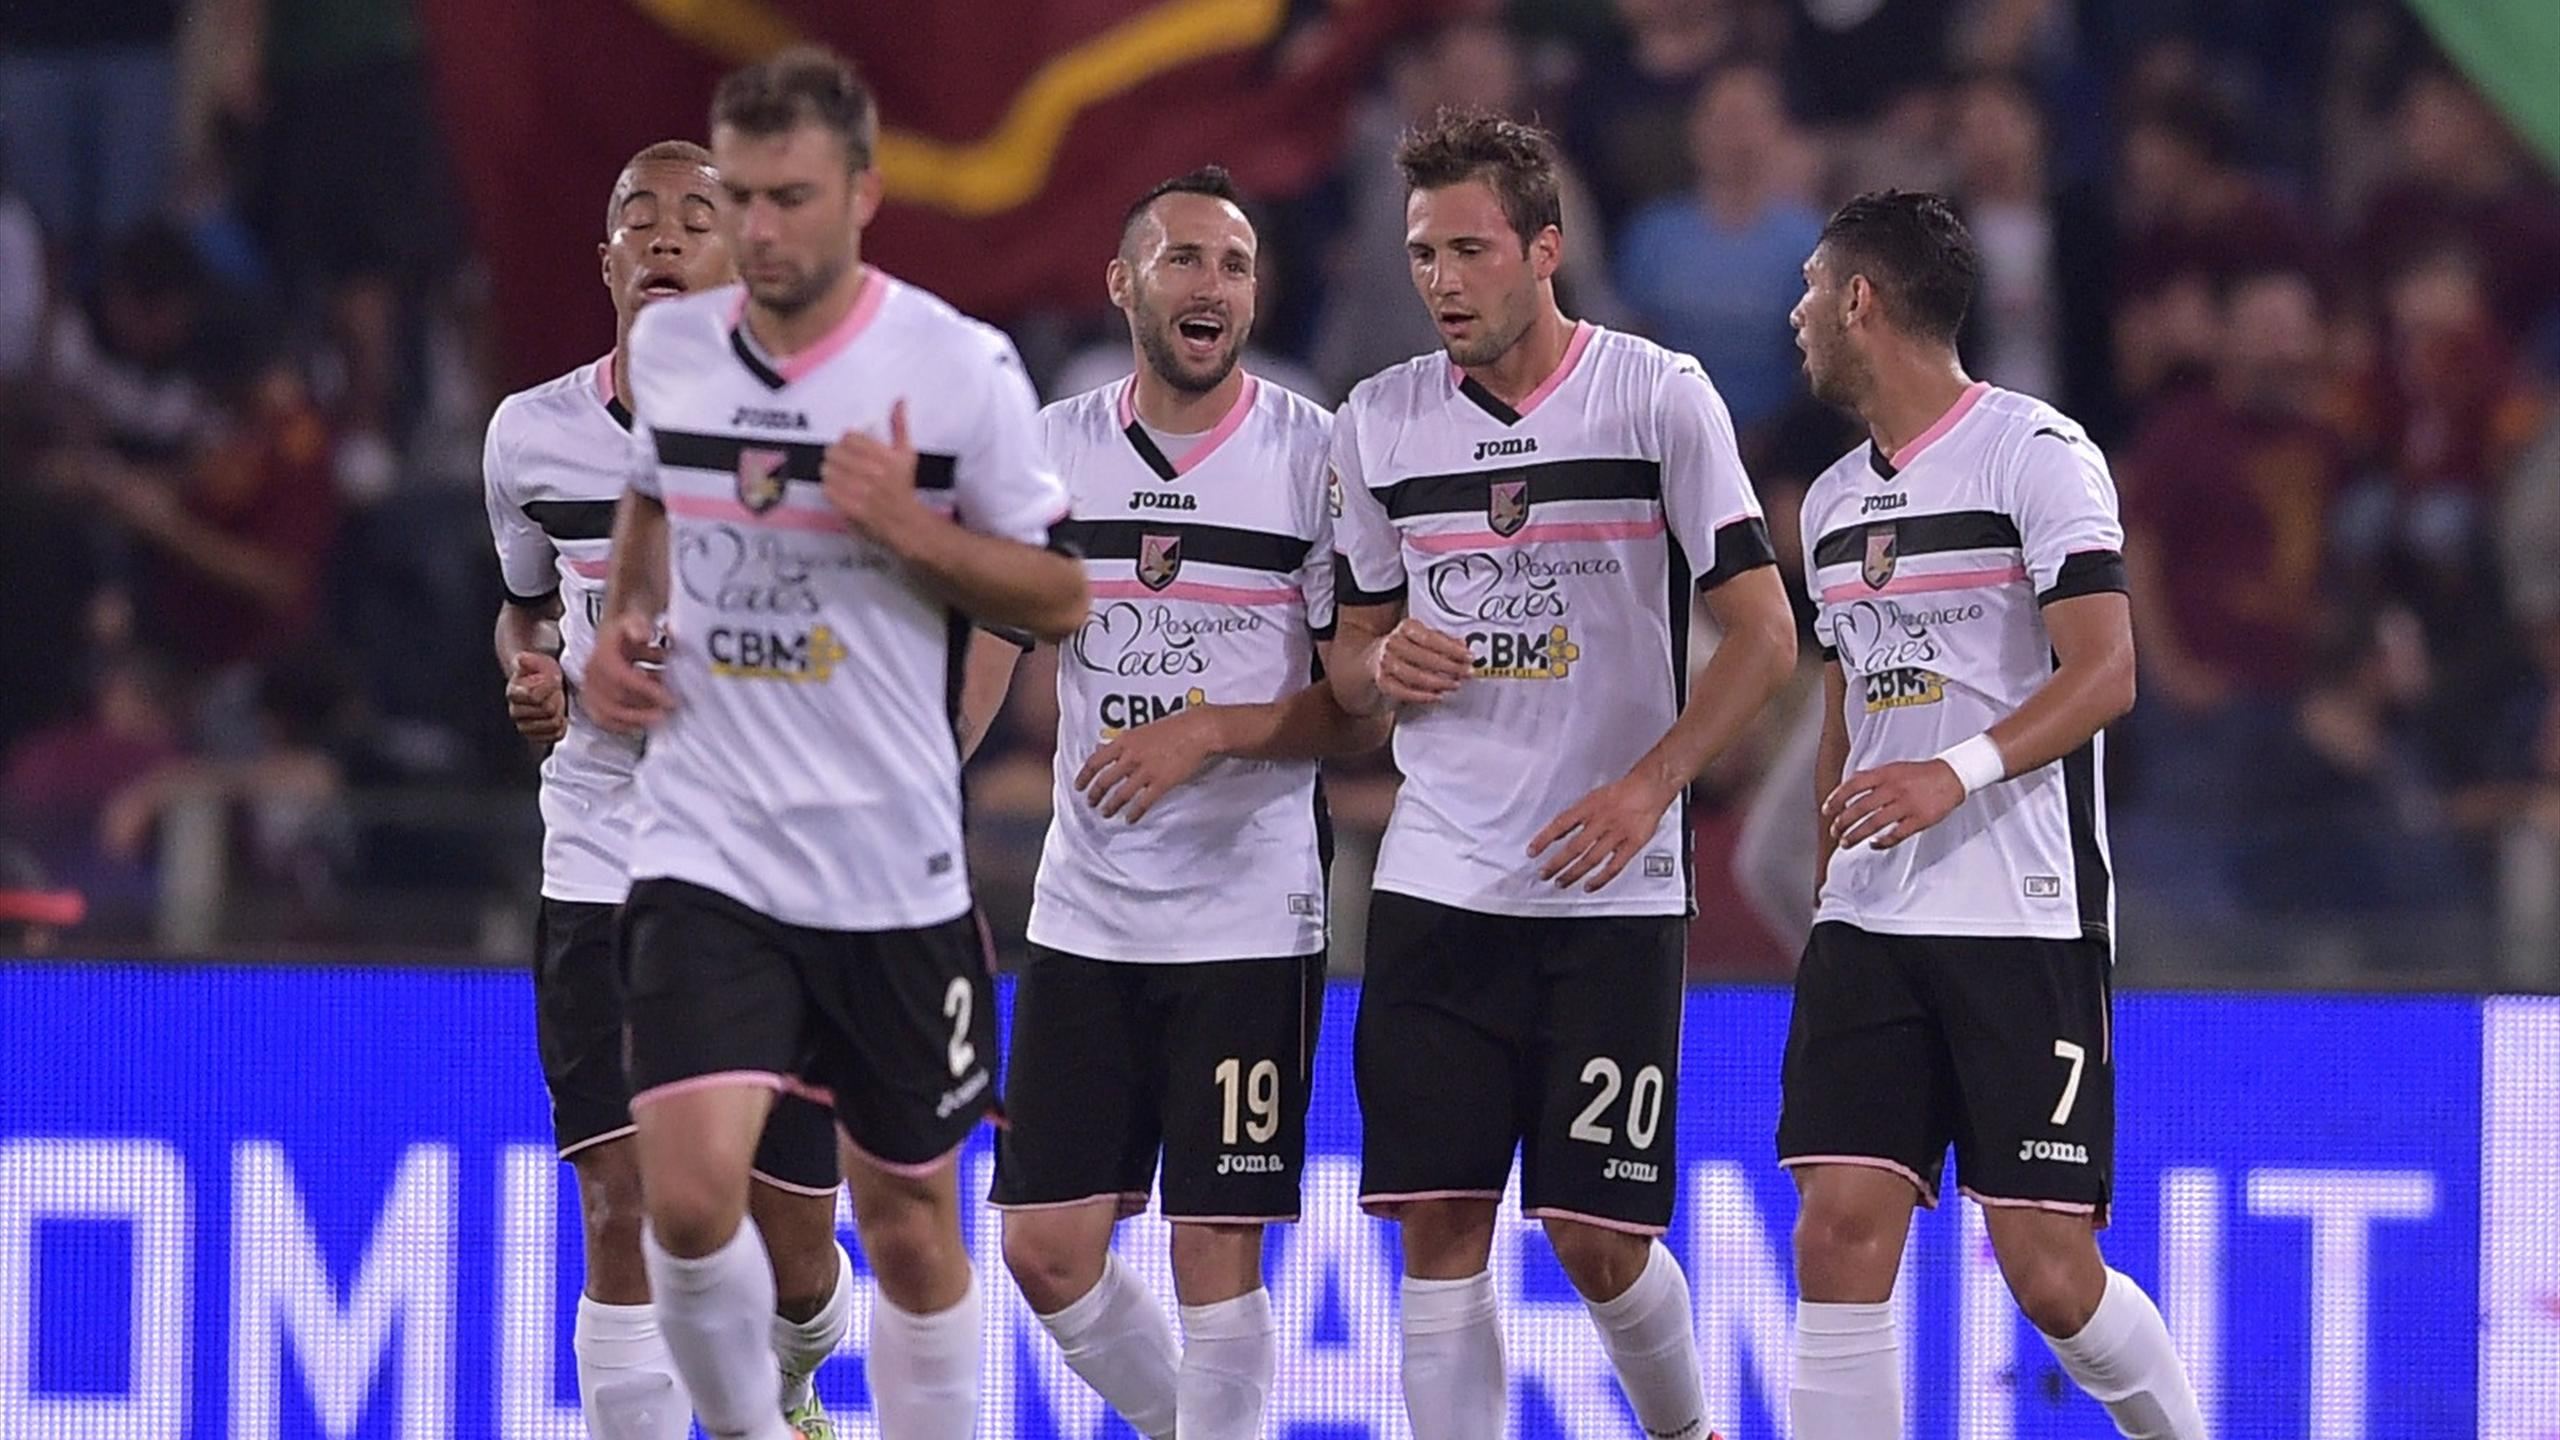 Video: AS Roma vs Palermo